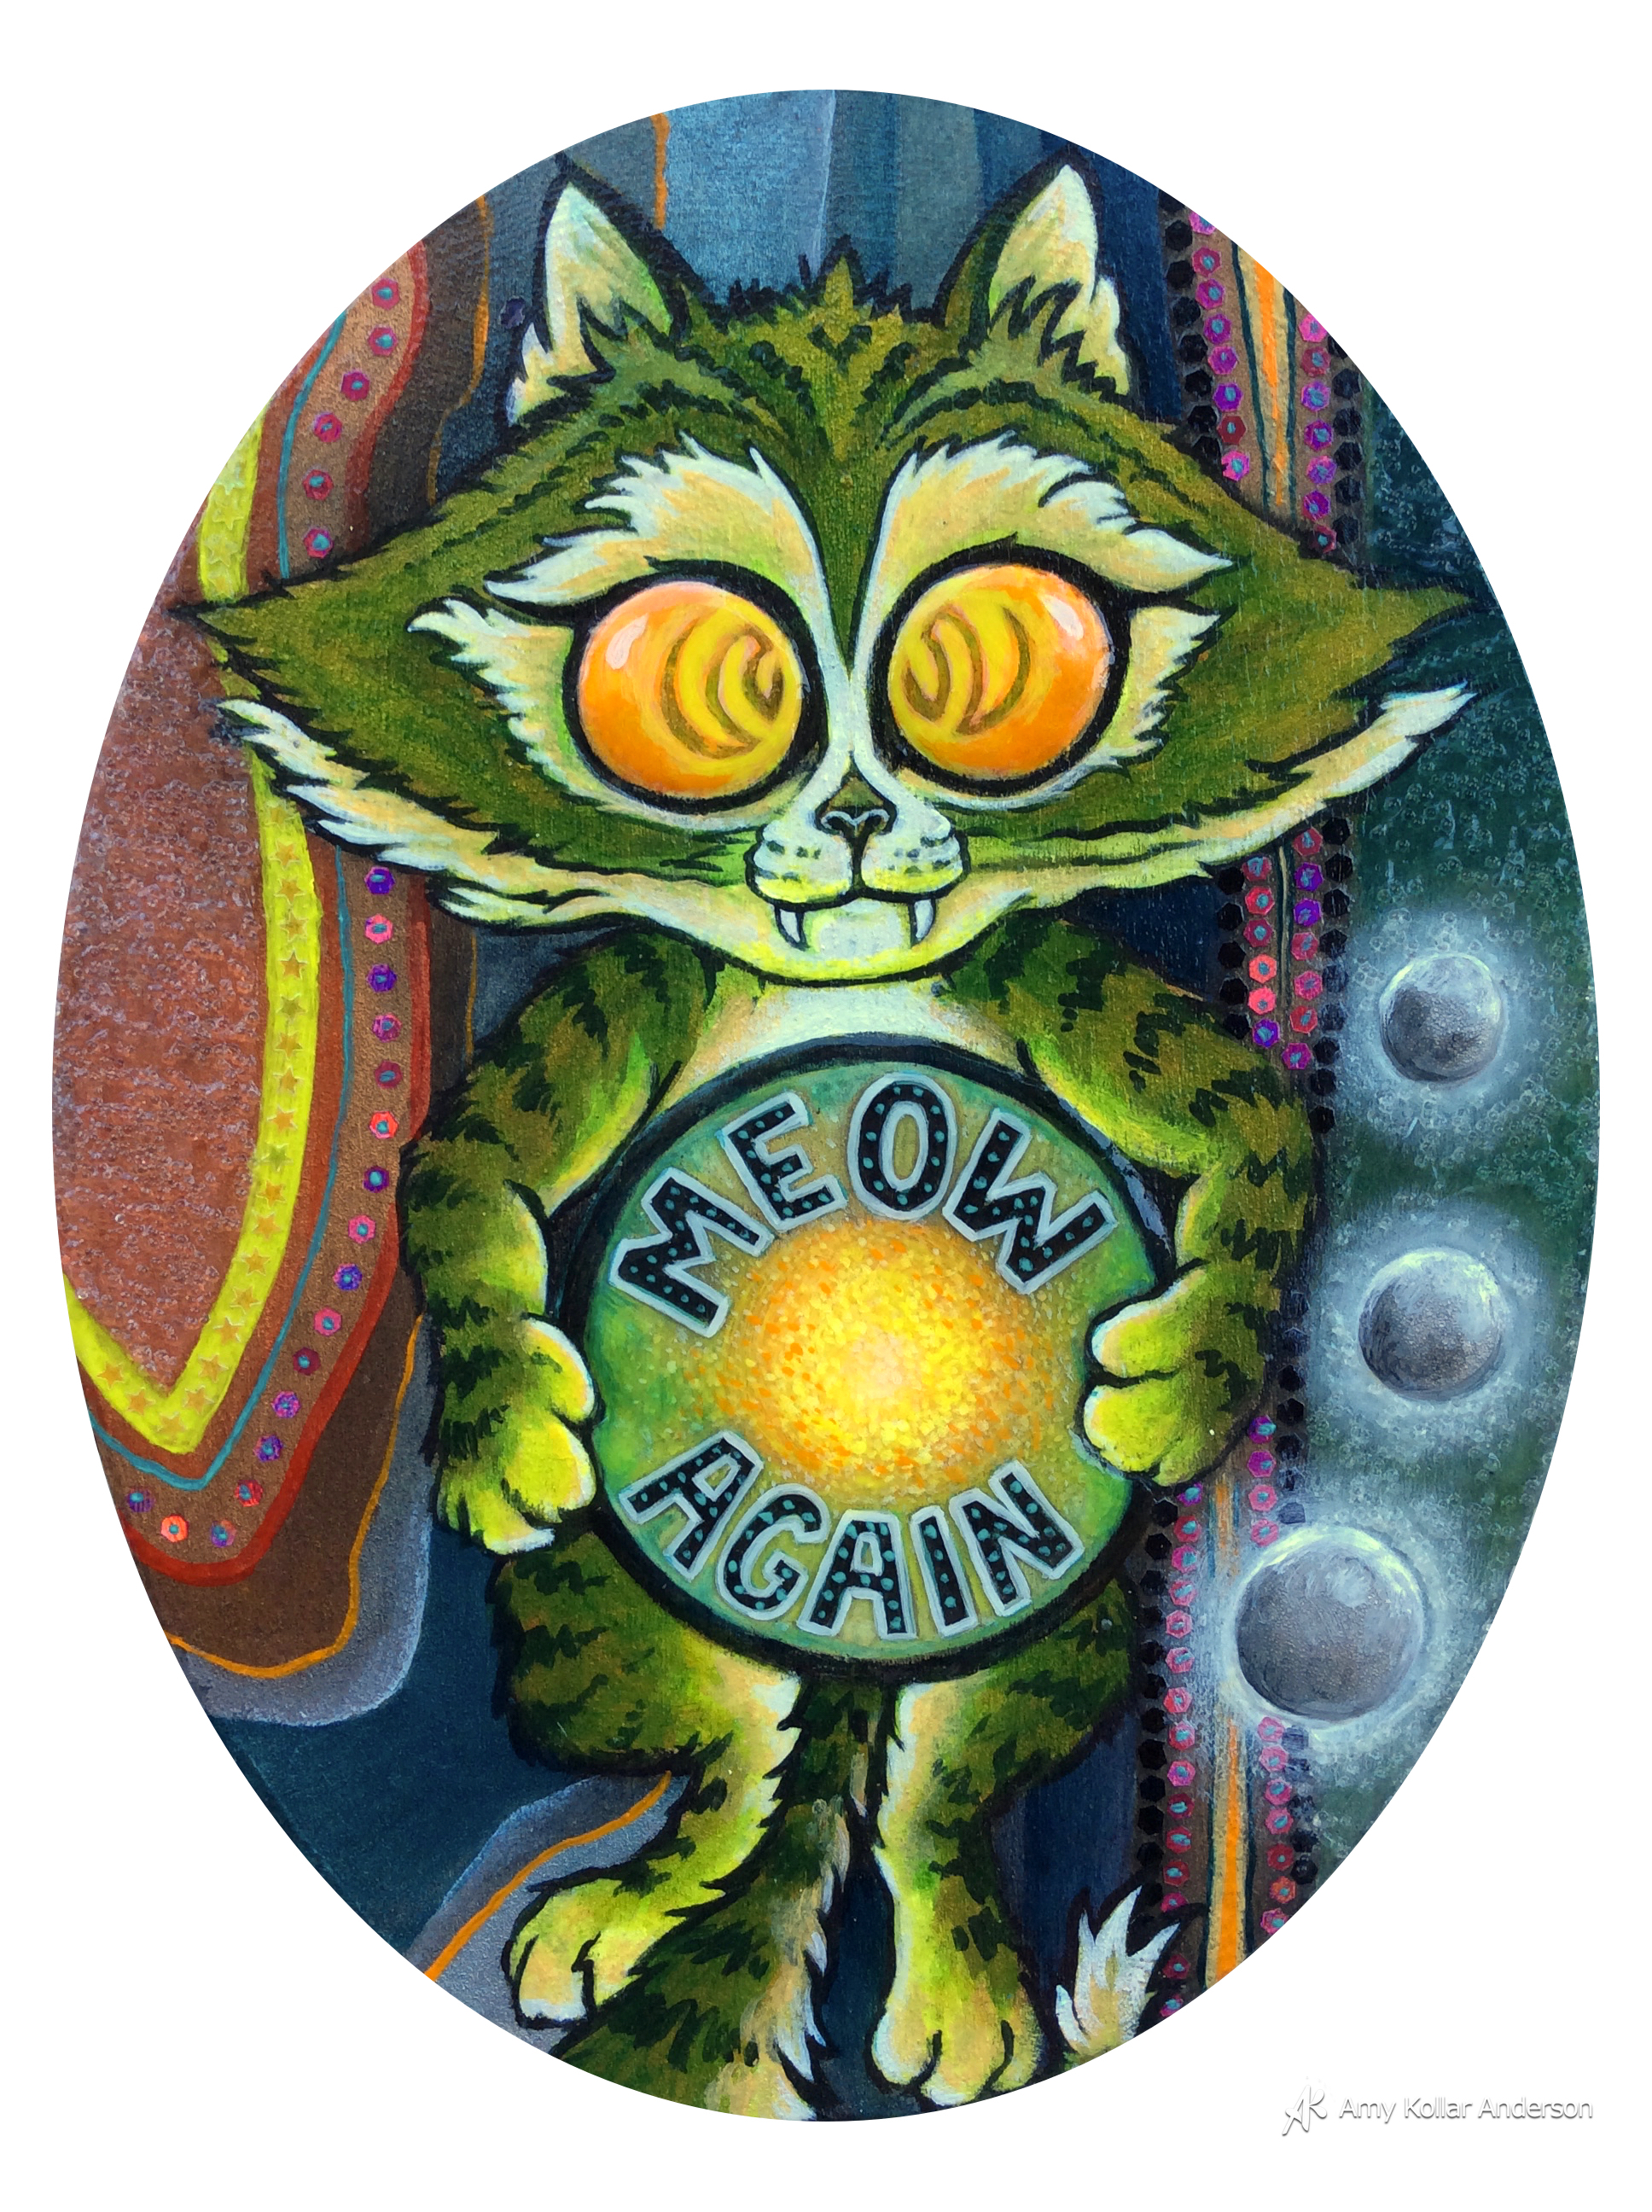 """Meow Again   :acrylic paint, glitter, pouring medium and glass beads :"""" x 8"""" x 1"""" :2015 Collection of S. & R. Hensley"""